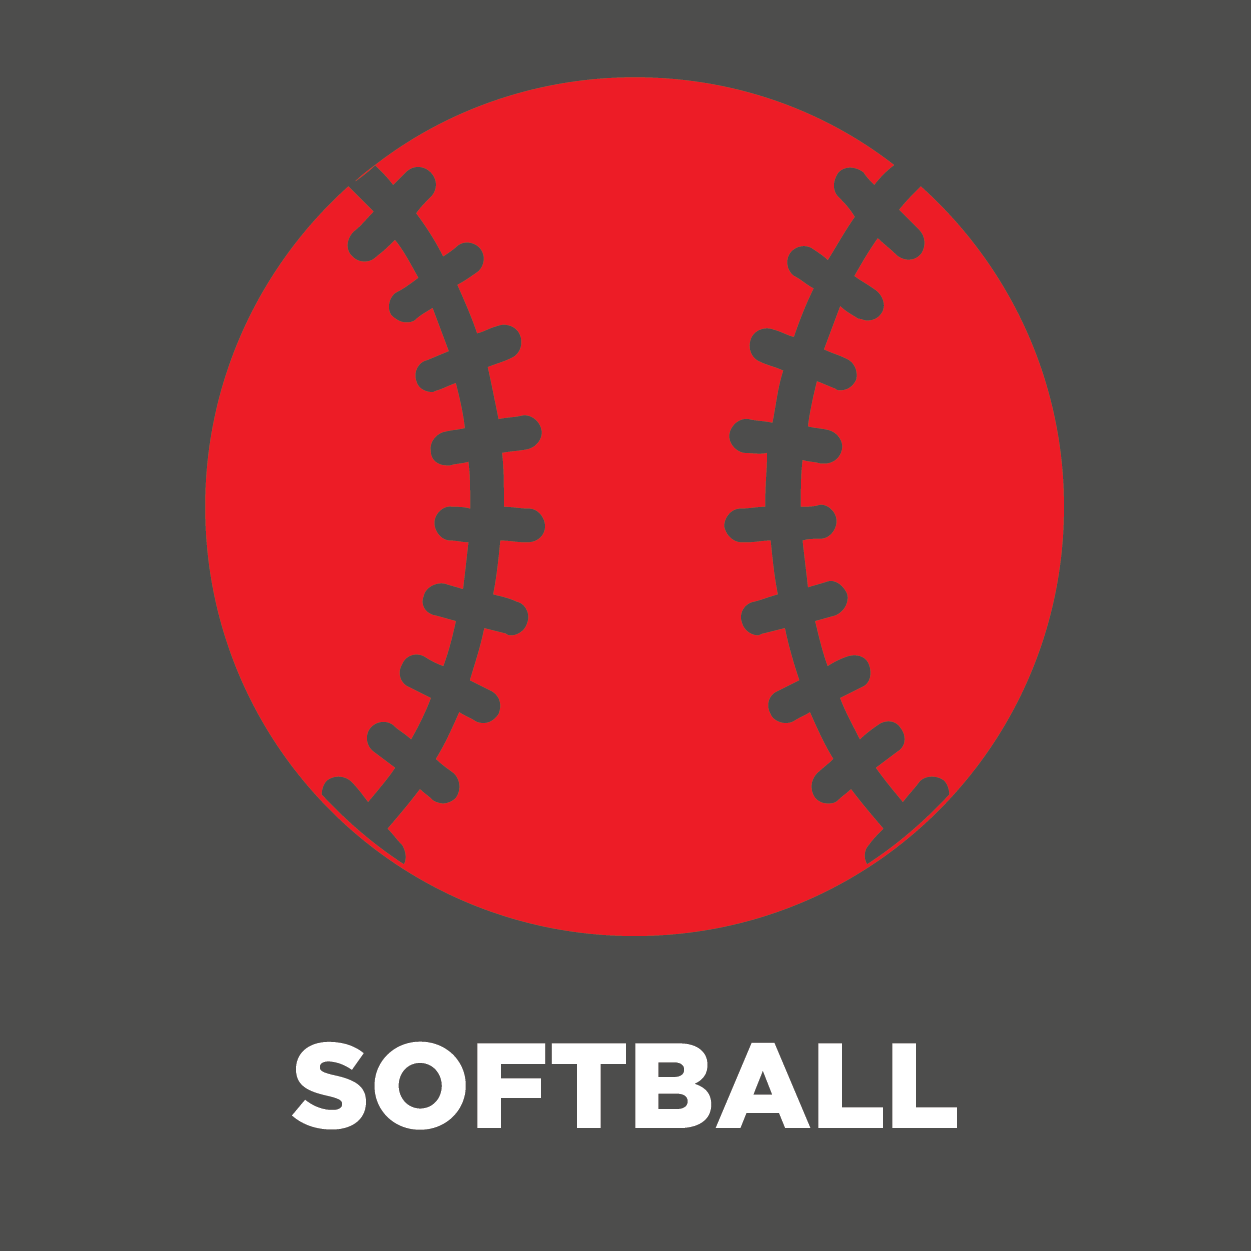 Web Buttons sports Central_Softball.png